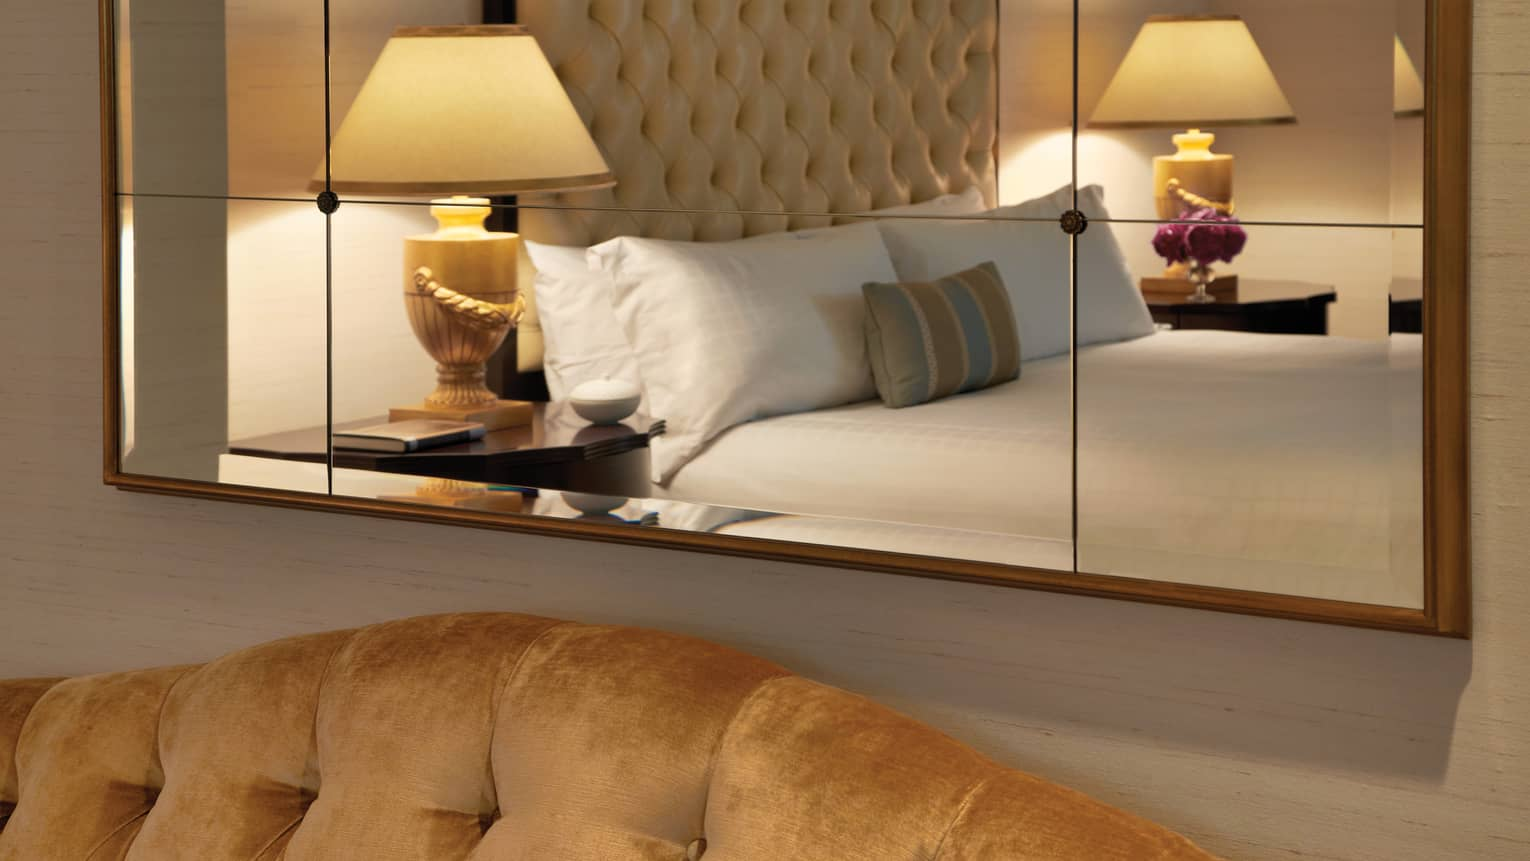 Bed, padded headboard, two lamps seen in reflection of mirror on hotel room wall above sofa